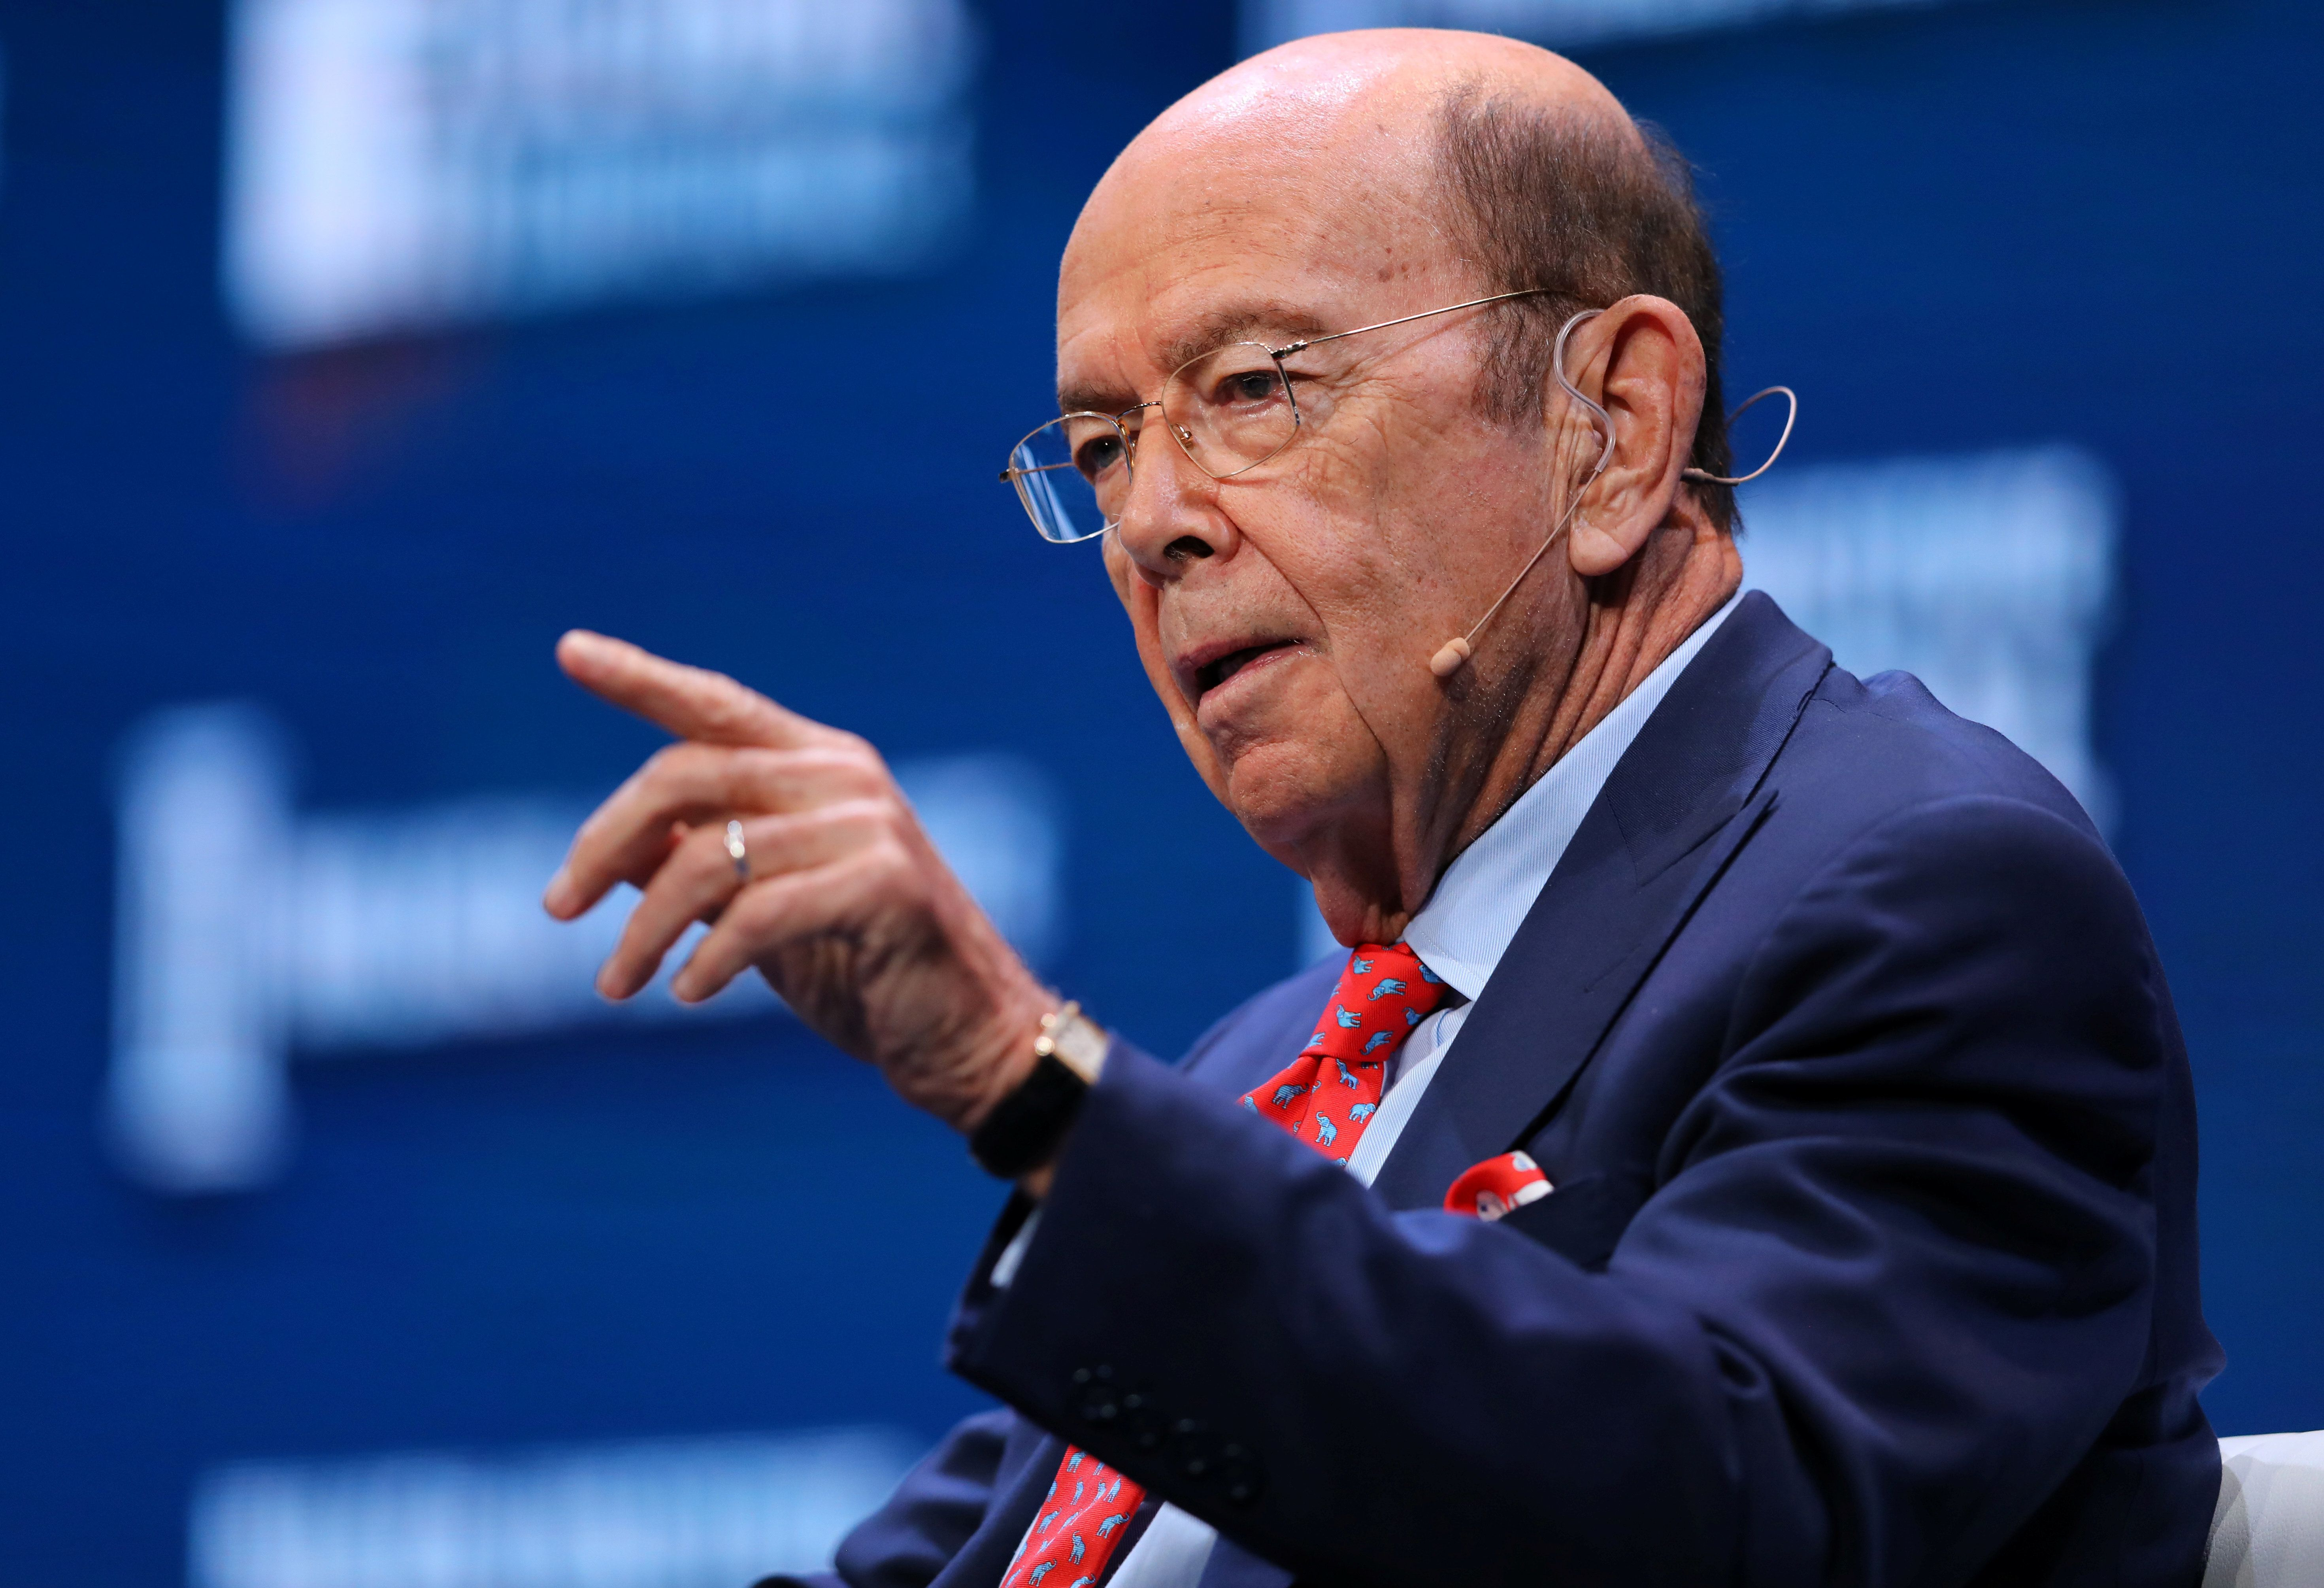 As commerce secretary, Wilbur Ross is charged with overseeing President Donald Trump's overhaul of U.S. trade policy.